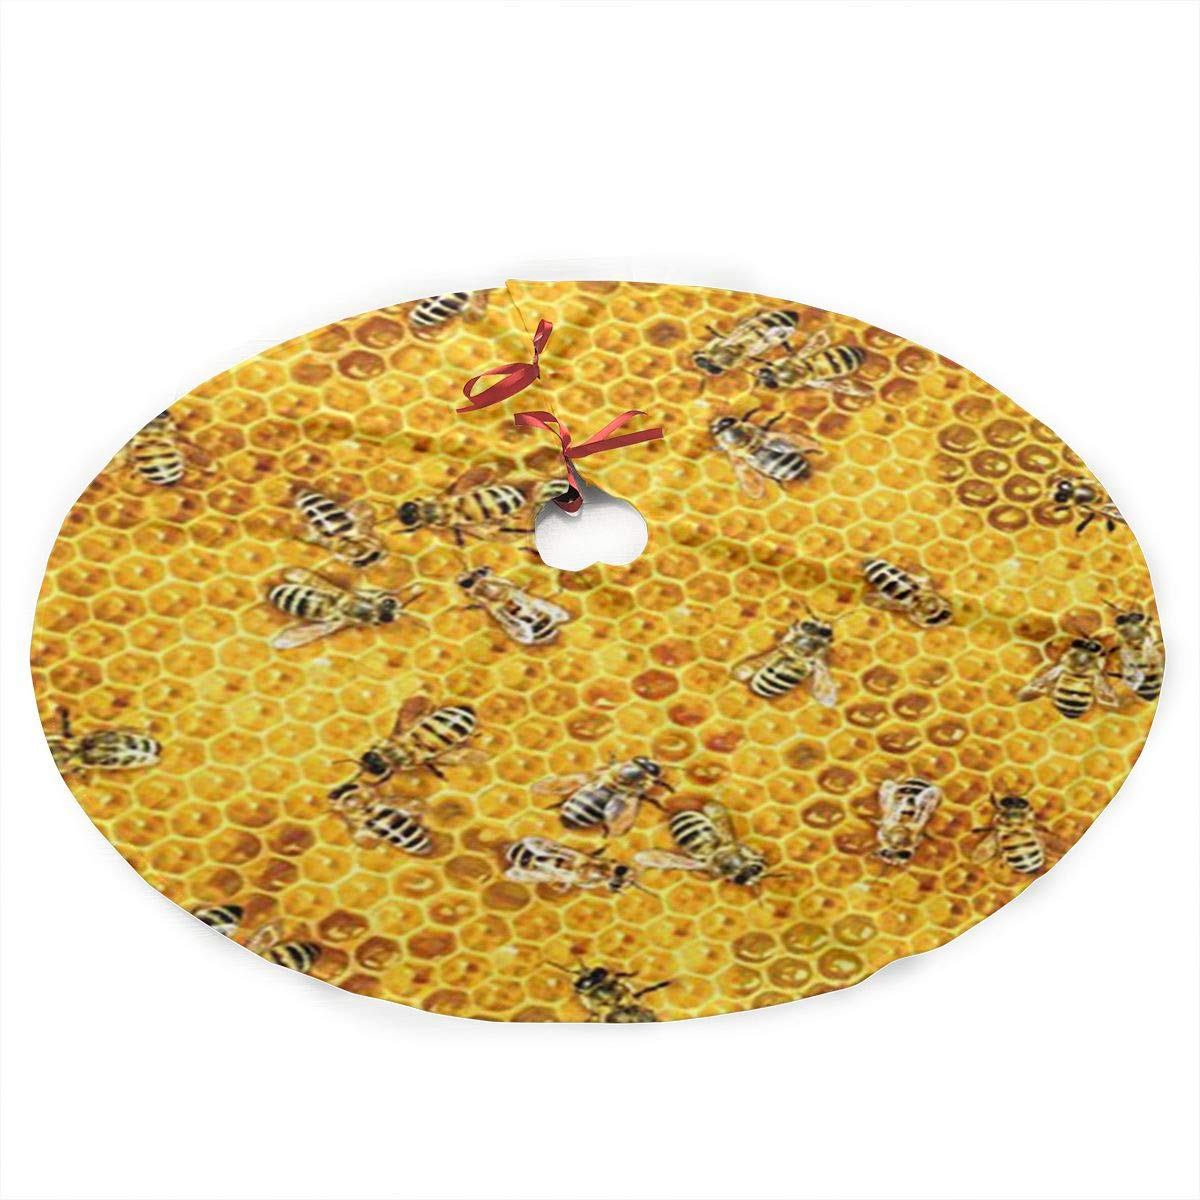 Honey Bees On A Honey Combs Christmas Tree Skirt with Santa, Xmas Tree Decorations Skirts Holiday Ornaments with Double Edges